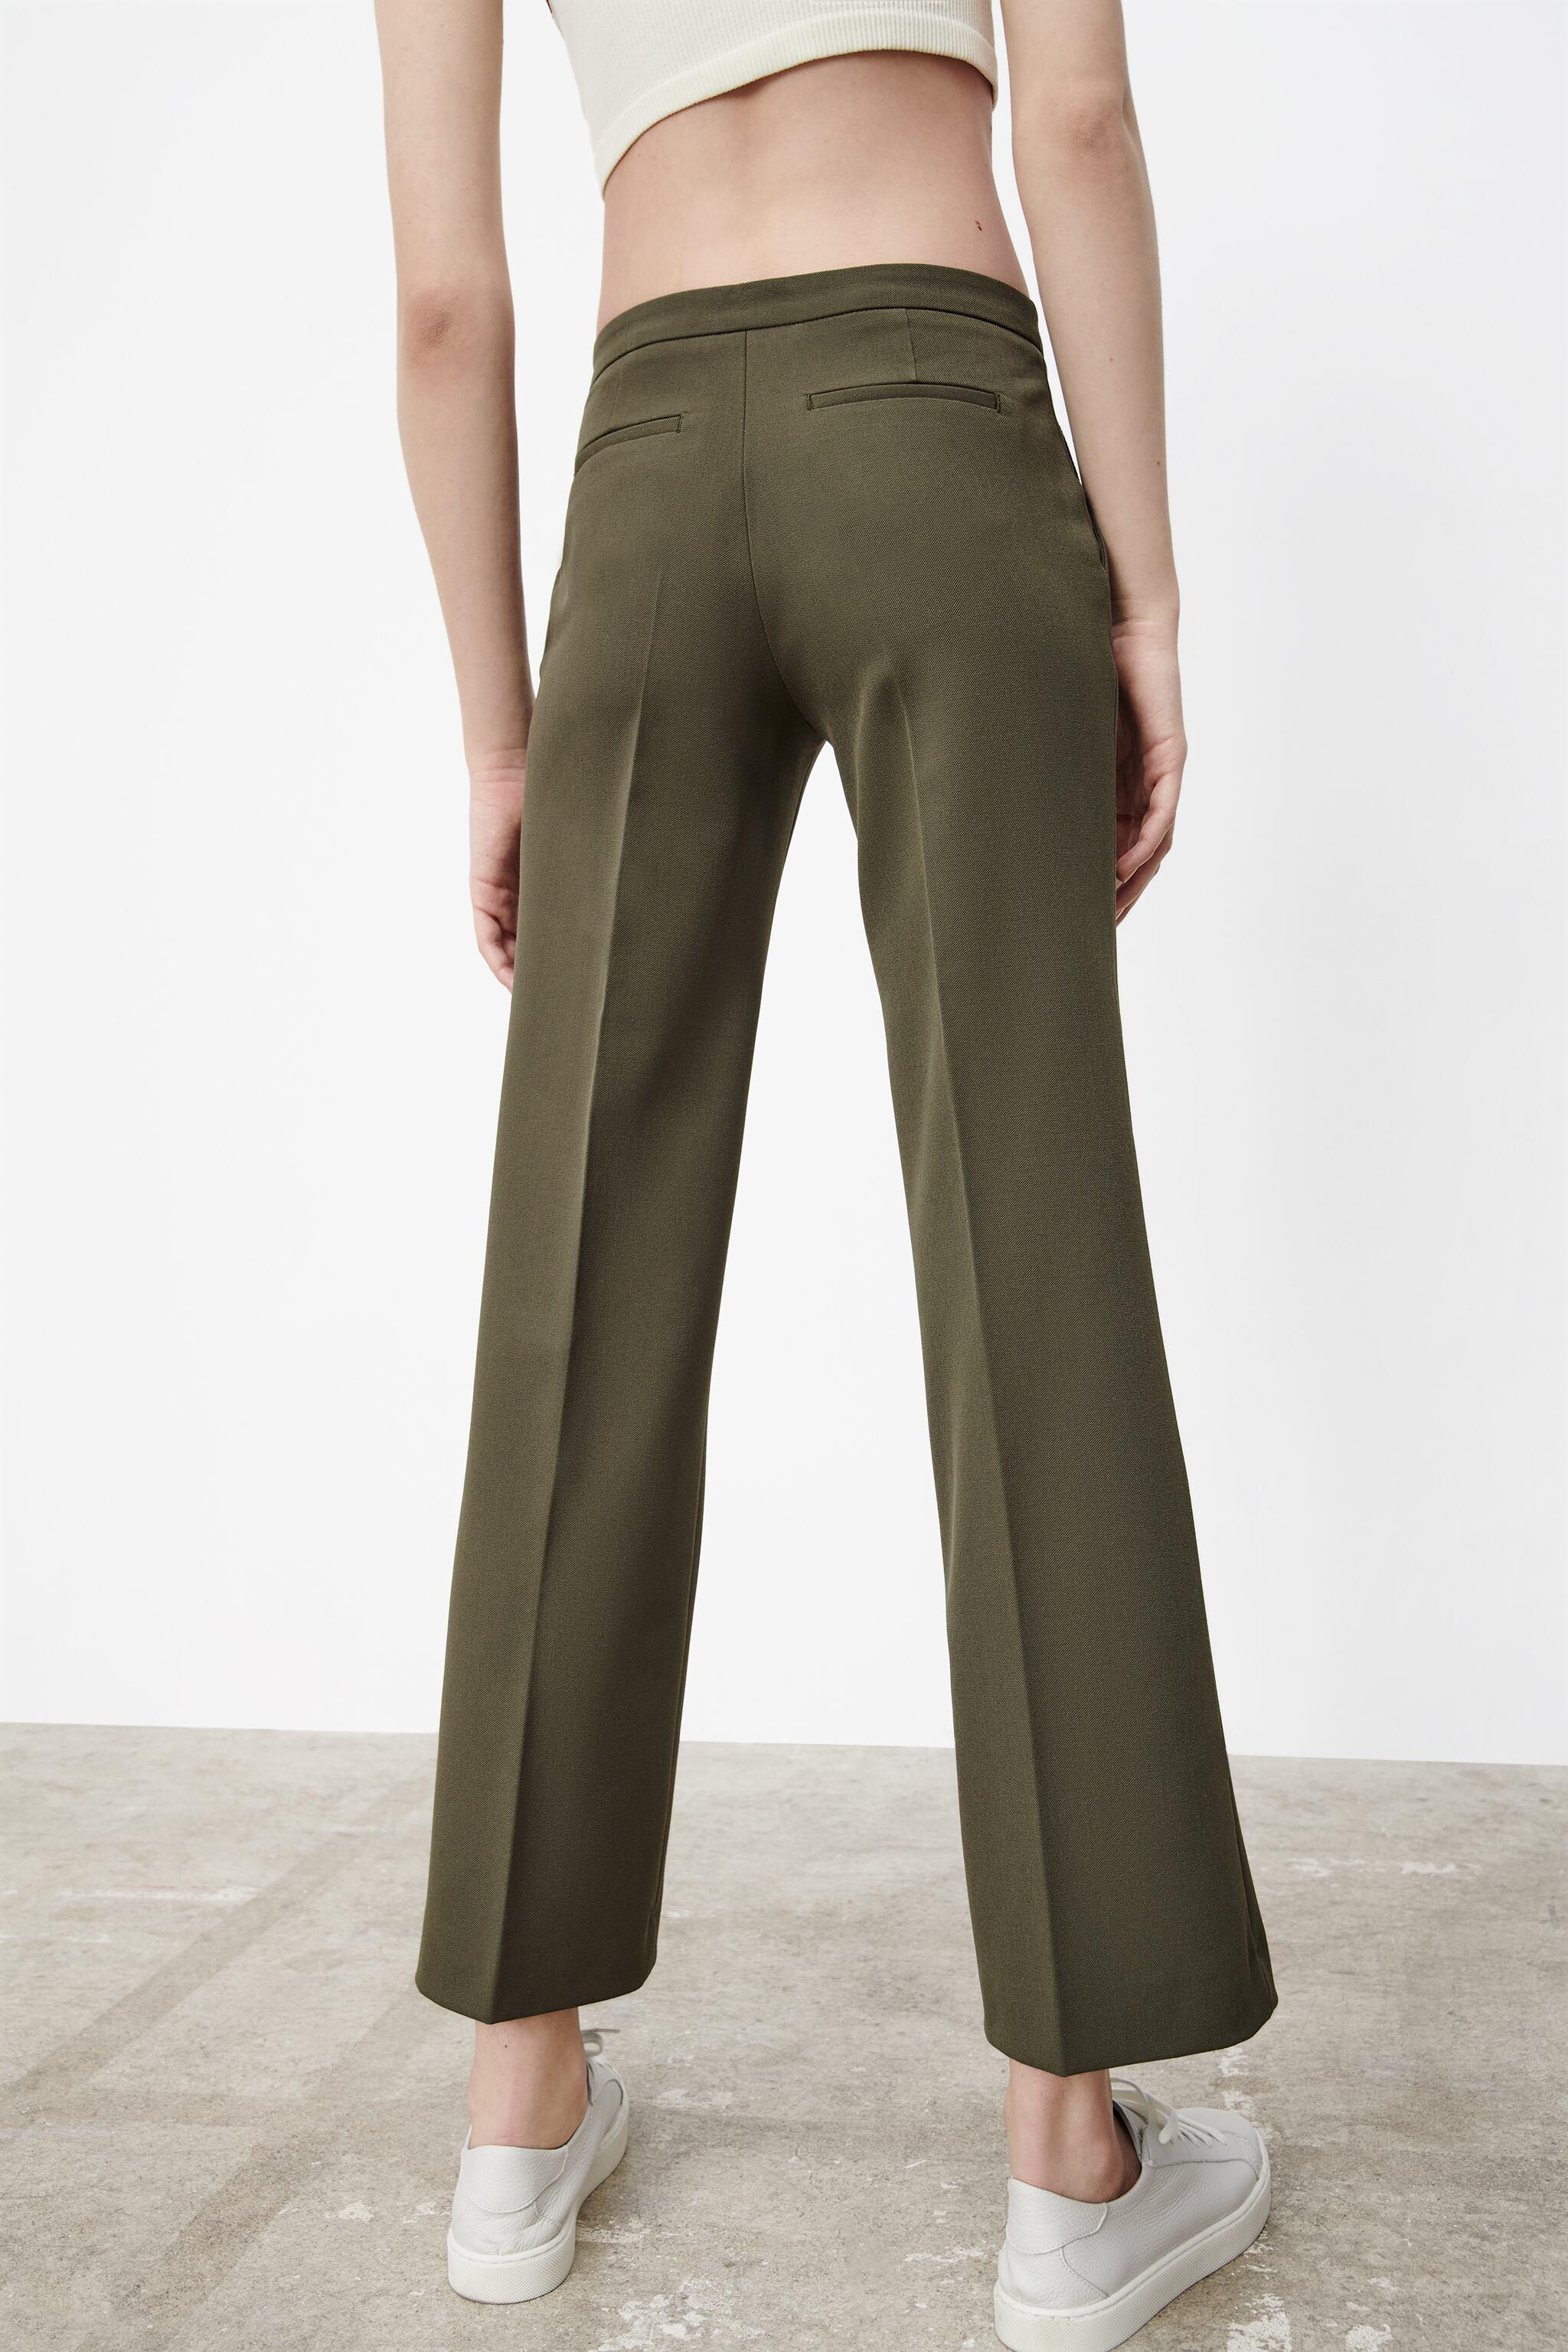 LIMITED EDITION PANTS 5